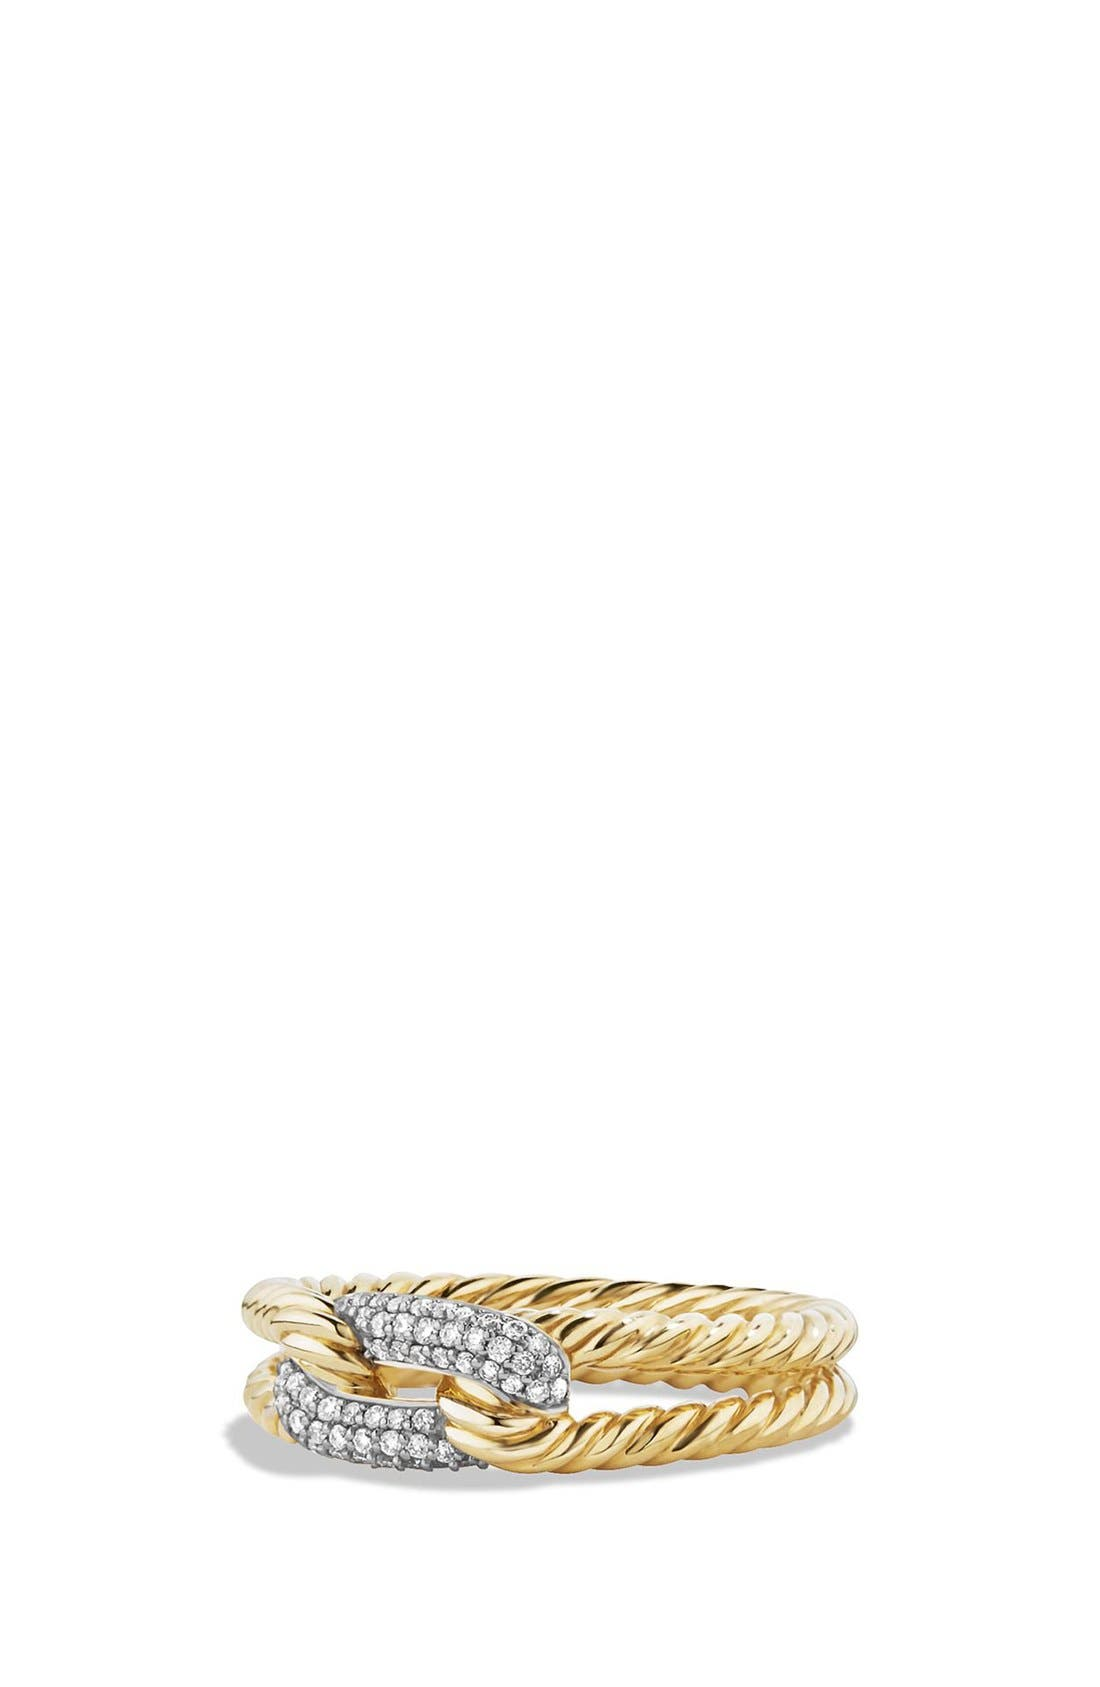 'Petite Pavé' Loop Ring with Diamonds in 18K Gold,                             Main thumbnail 1, color,                             GOLD